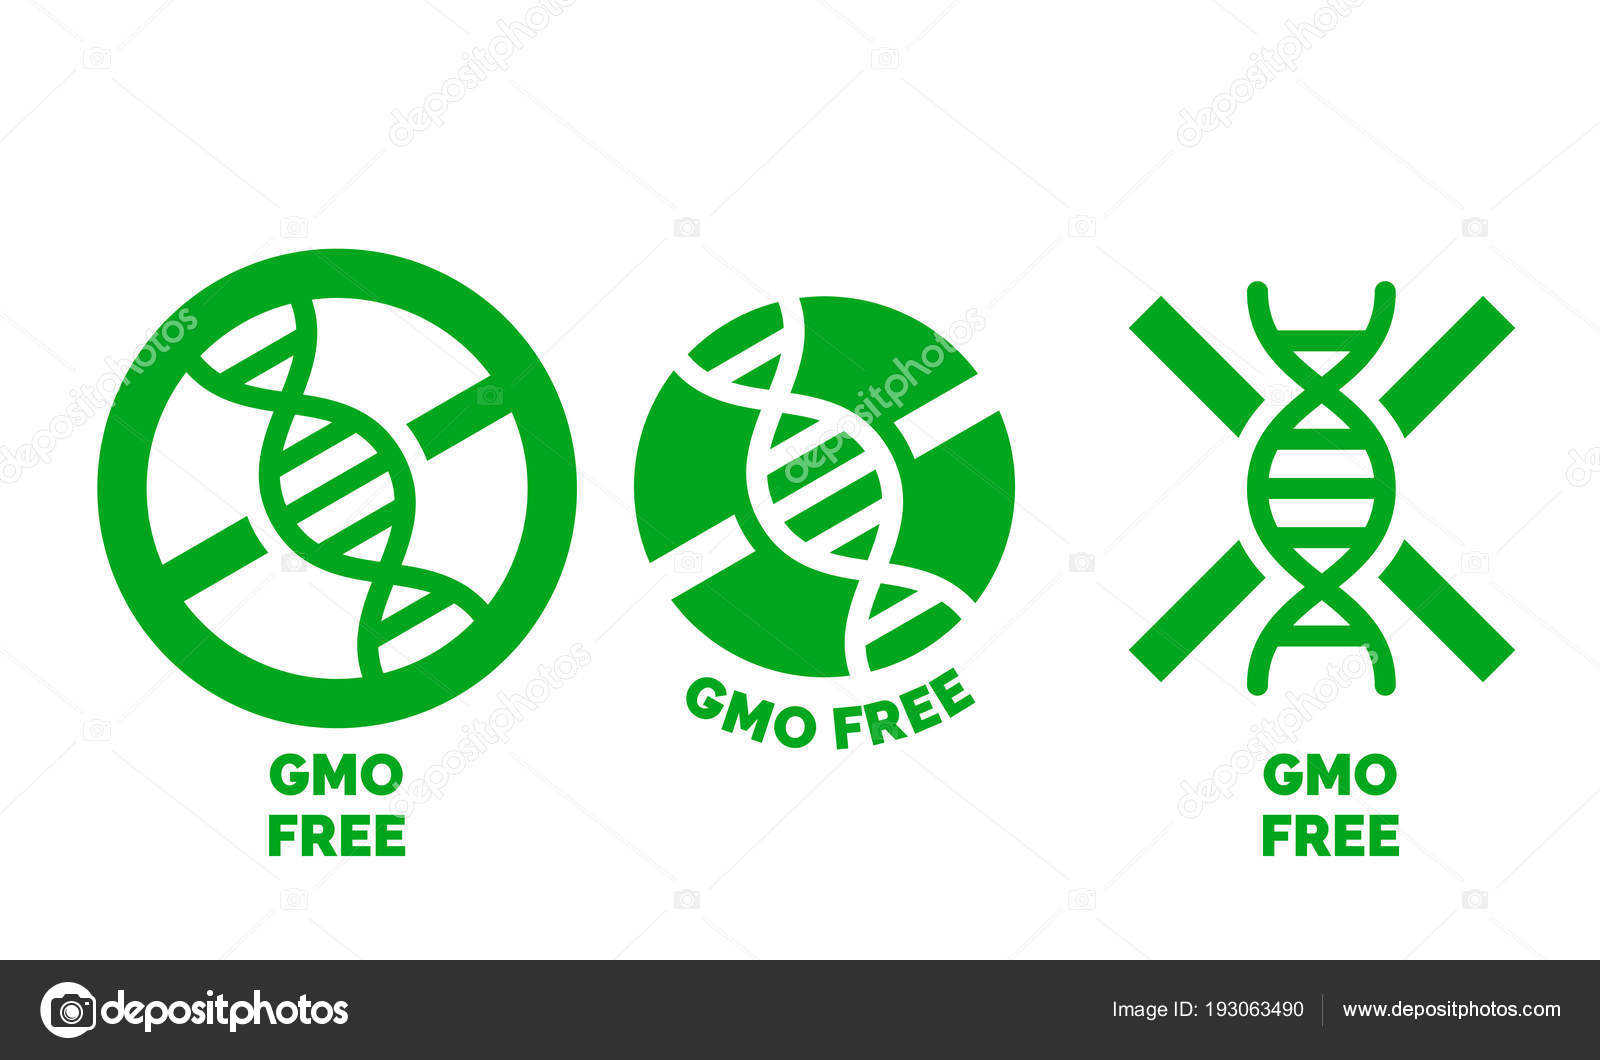 Gmo Free Label For No Gmo Added Product Package Icon Design Template